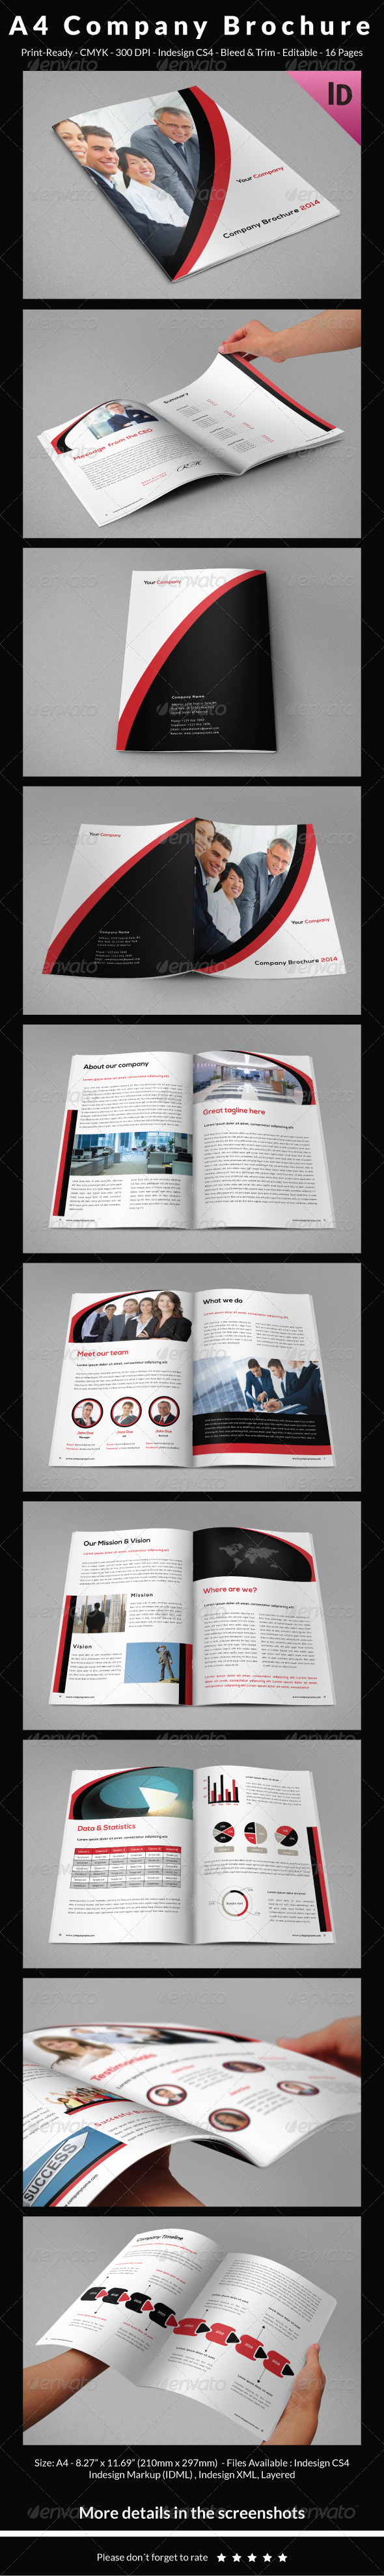 Presentation Template InDesign Graphics, Designs & Templates (Page 5)